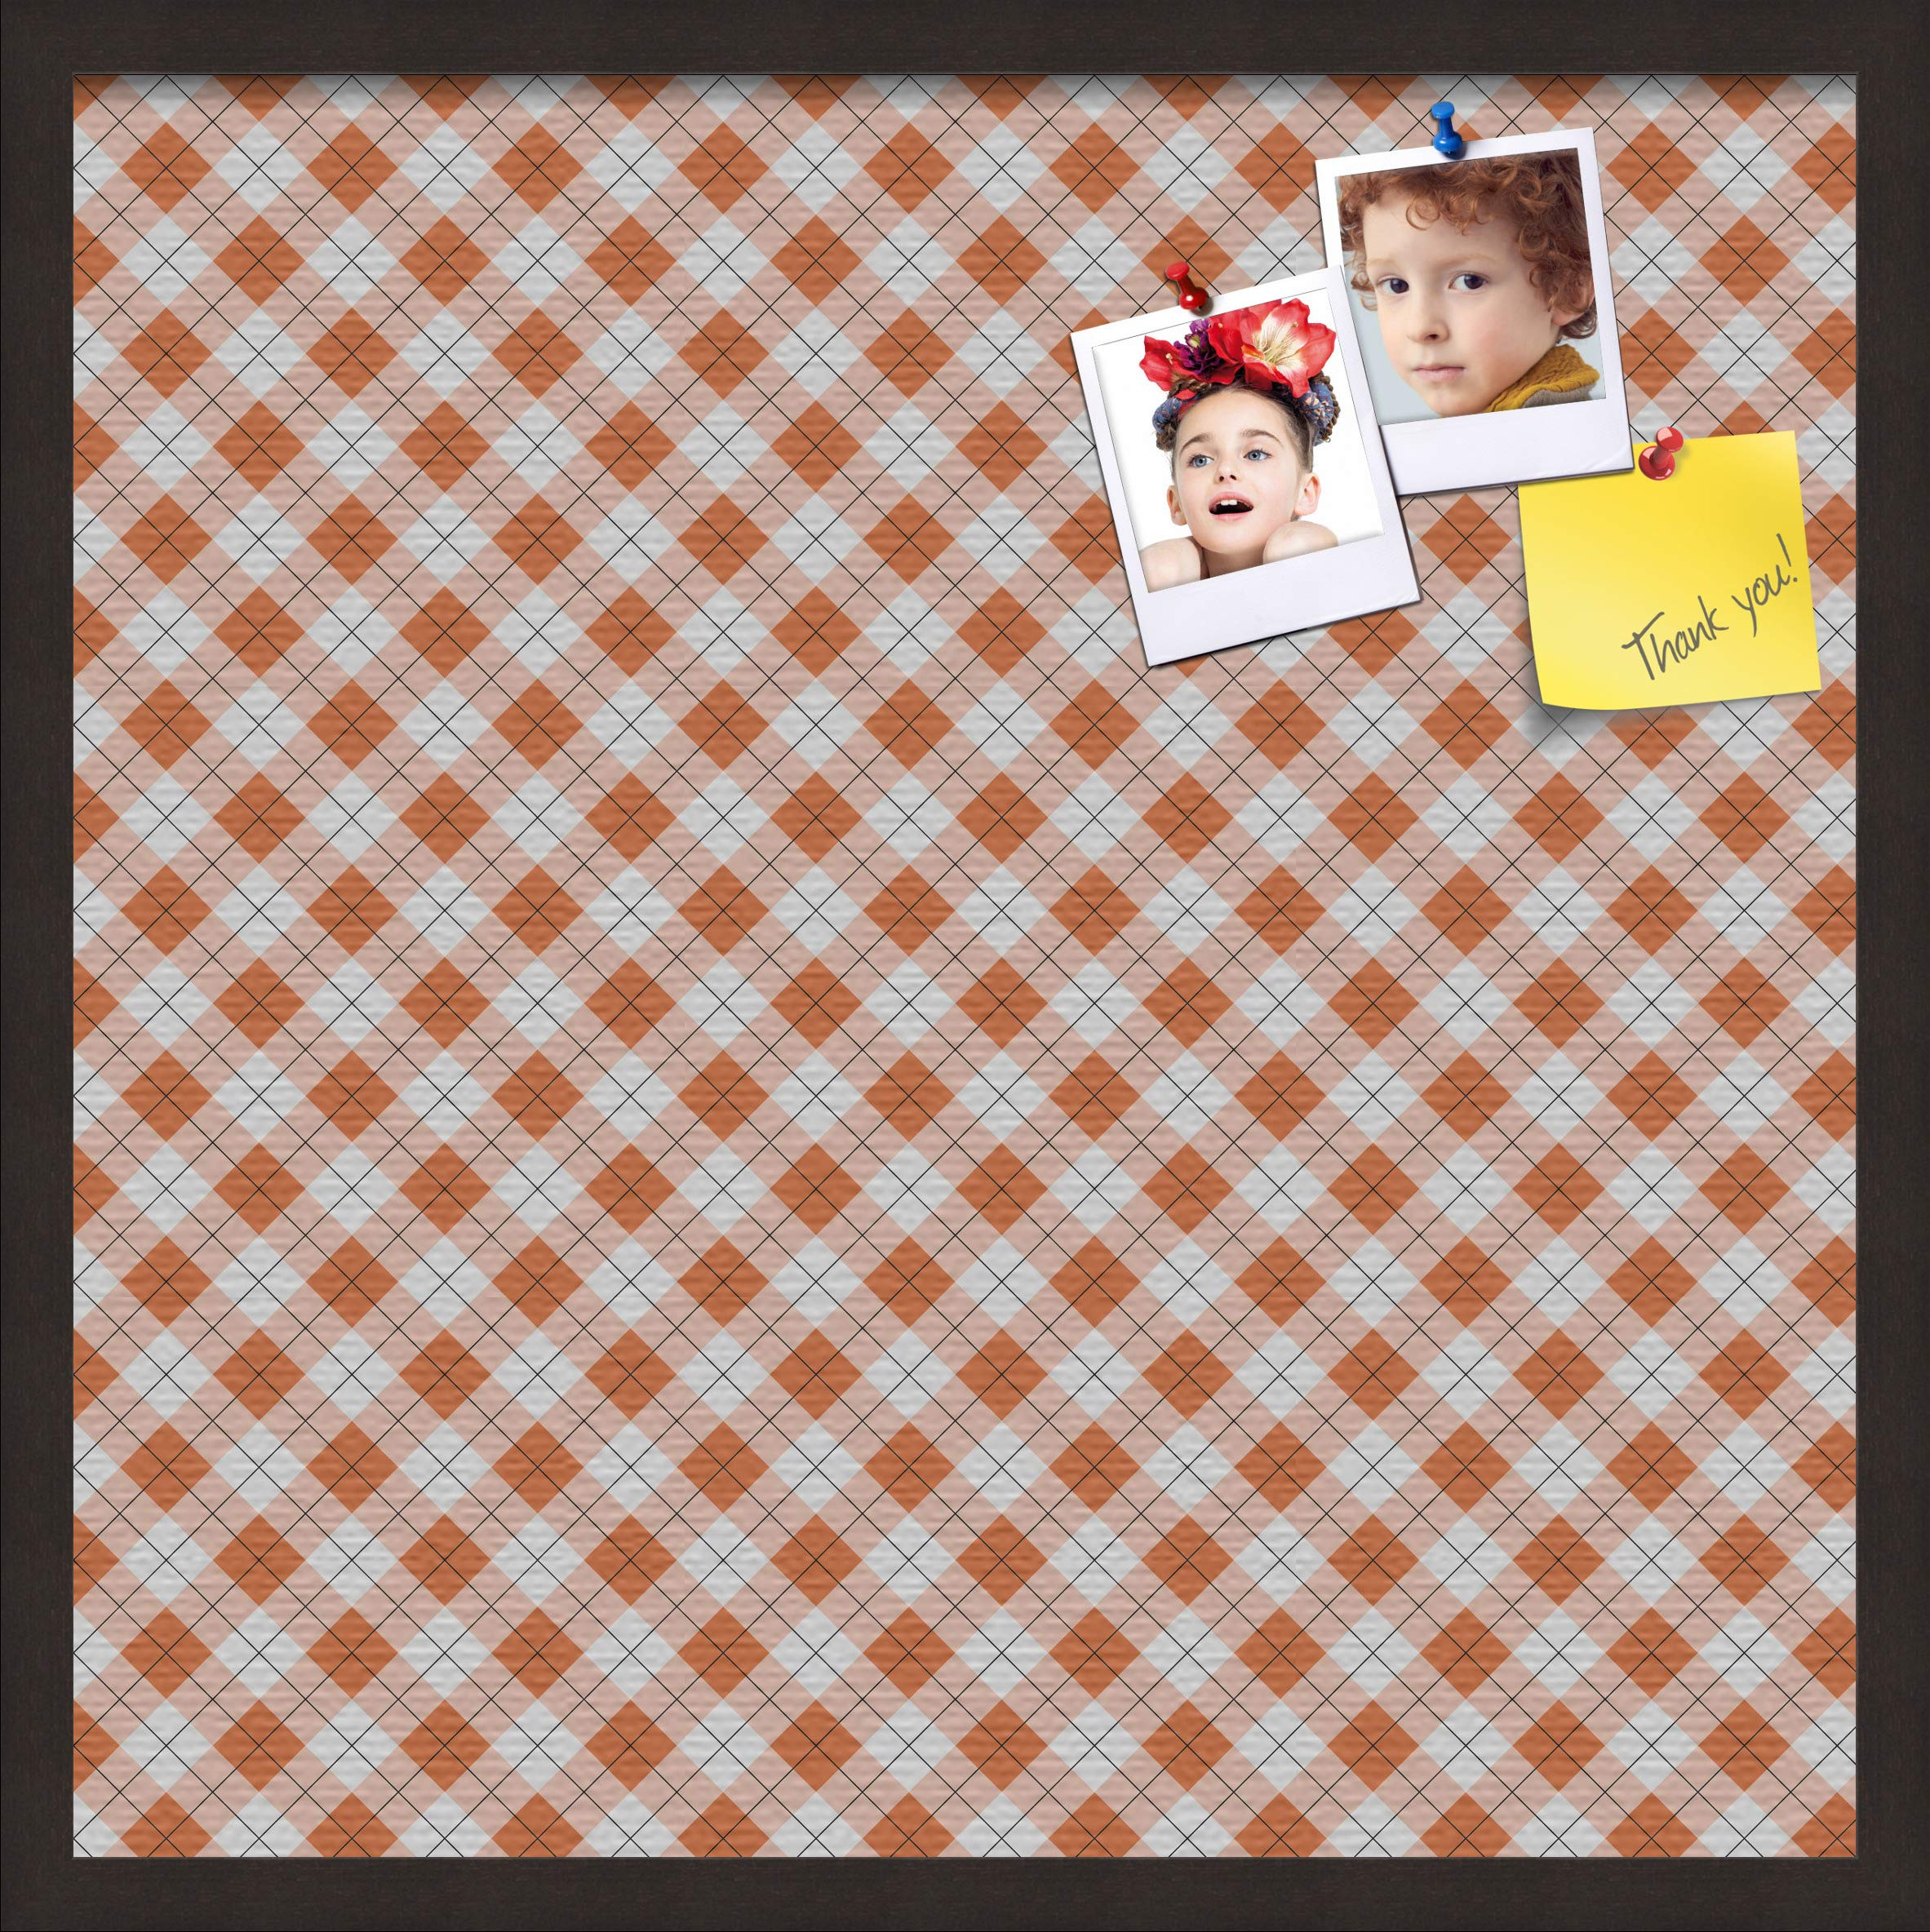 ArtToFrames 24x24 Inch Custom Cork Bulletin Board. This Argyle Burnt Orange Pin Board Comes with a Fabric Style Canvas Finish, in a Coffee Frame (PinPix-634-24x24_FRBW26061) by PinPix